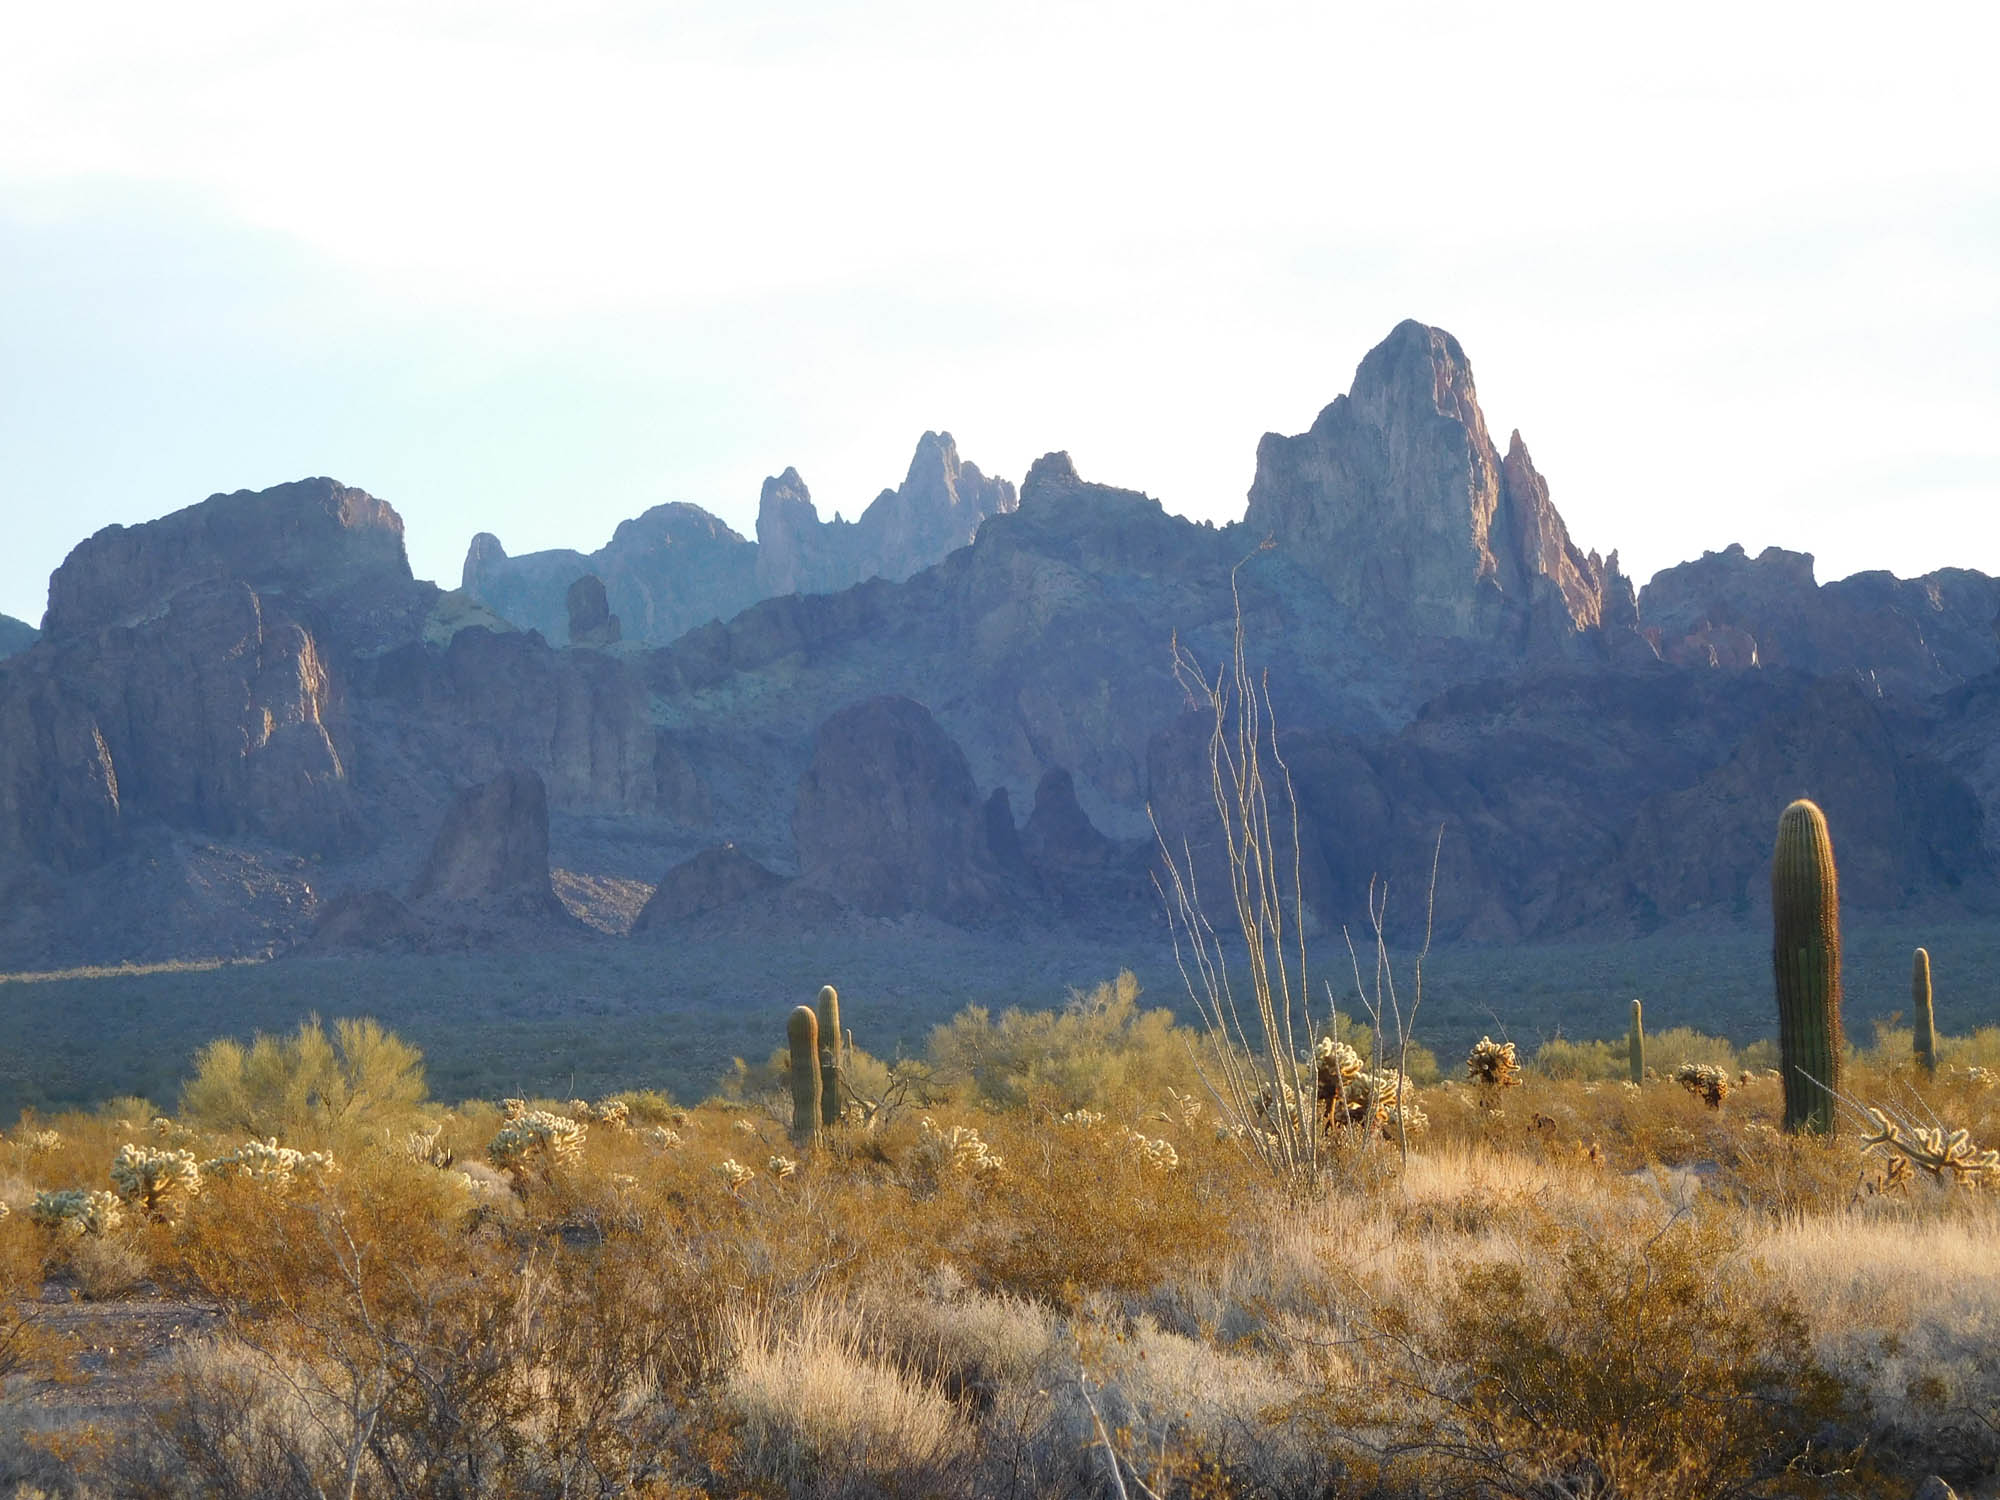 Looking back at the Kofa Mountains the next morning. What an awesome place.